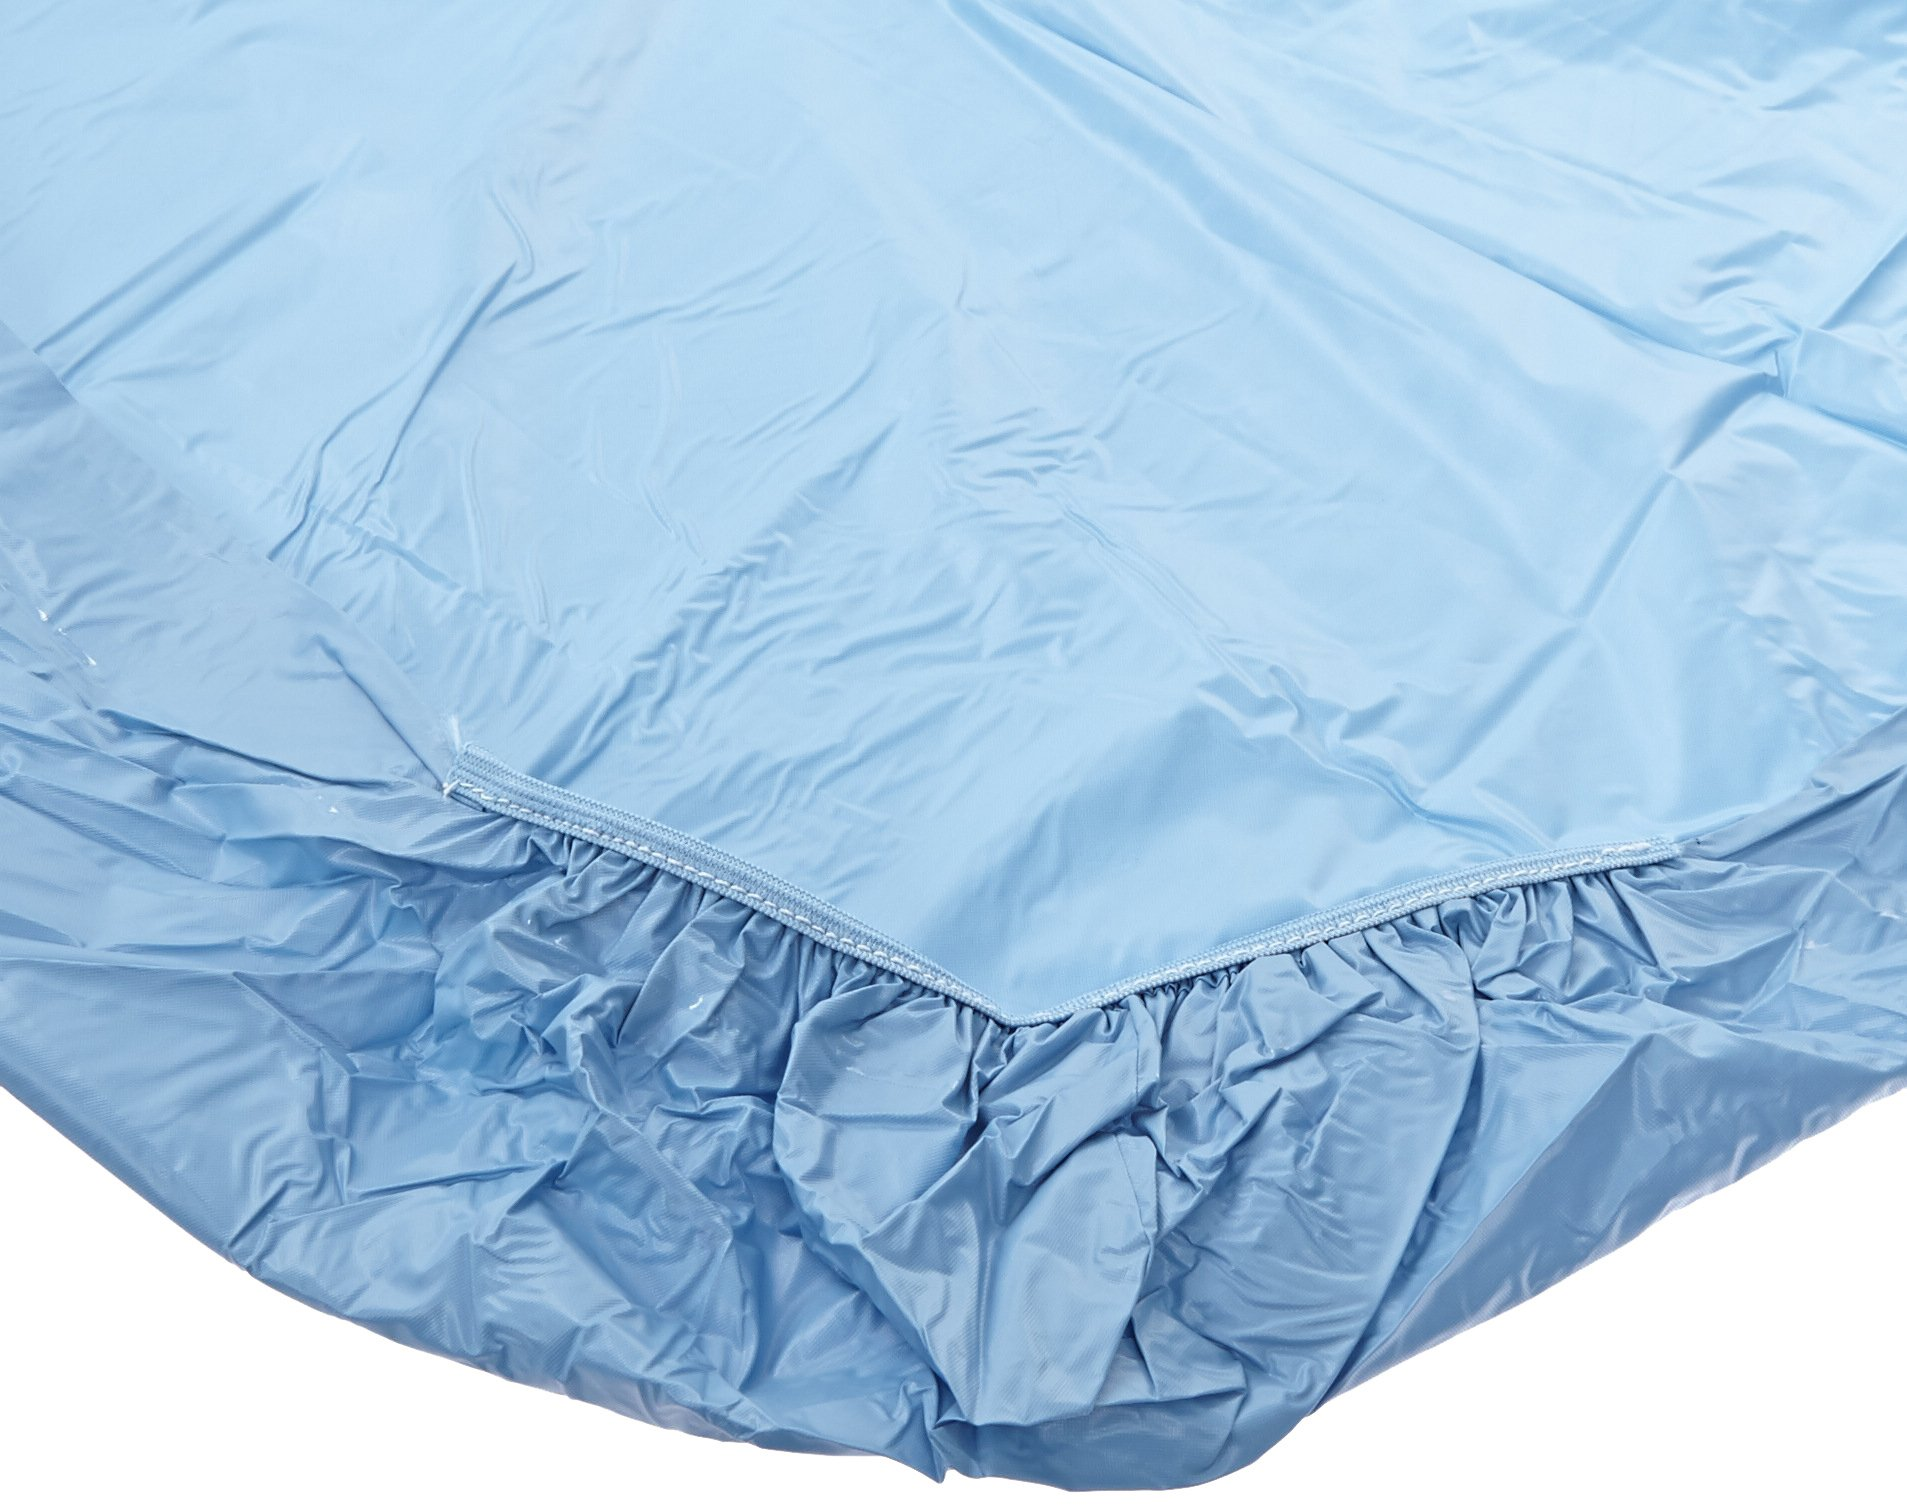 Kwik-Cover 3072-Light Blue 30'' X 72''  Kwik-Cover Light Blue Fitted Table Cover (1 full case of 100)